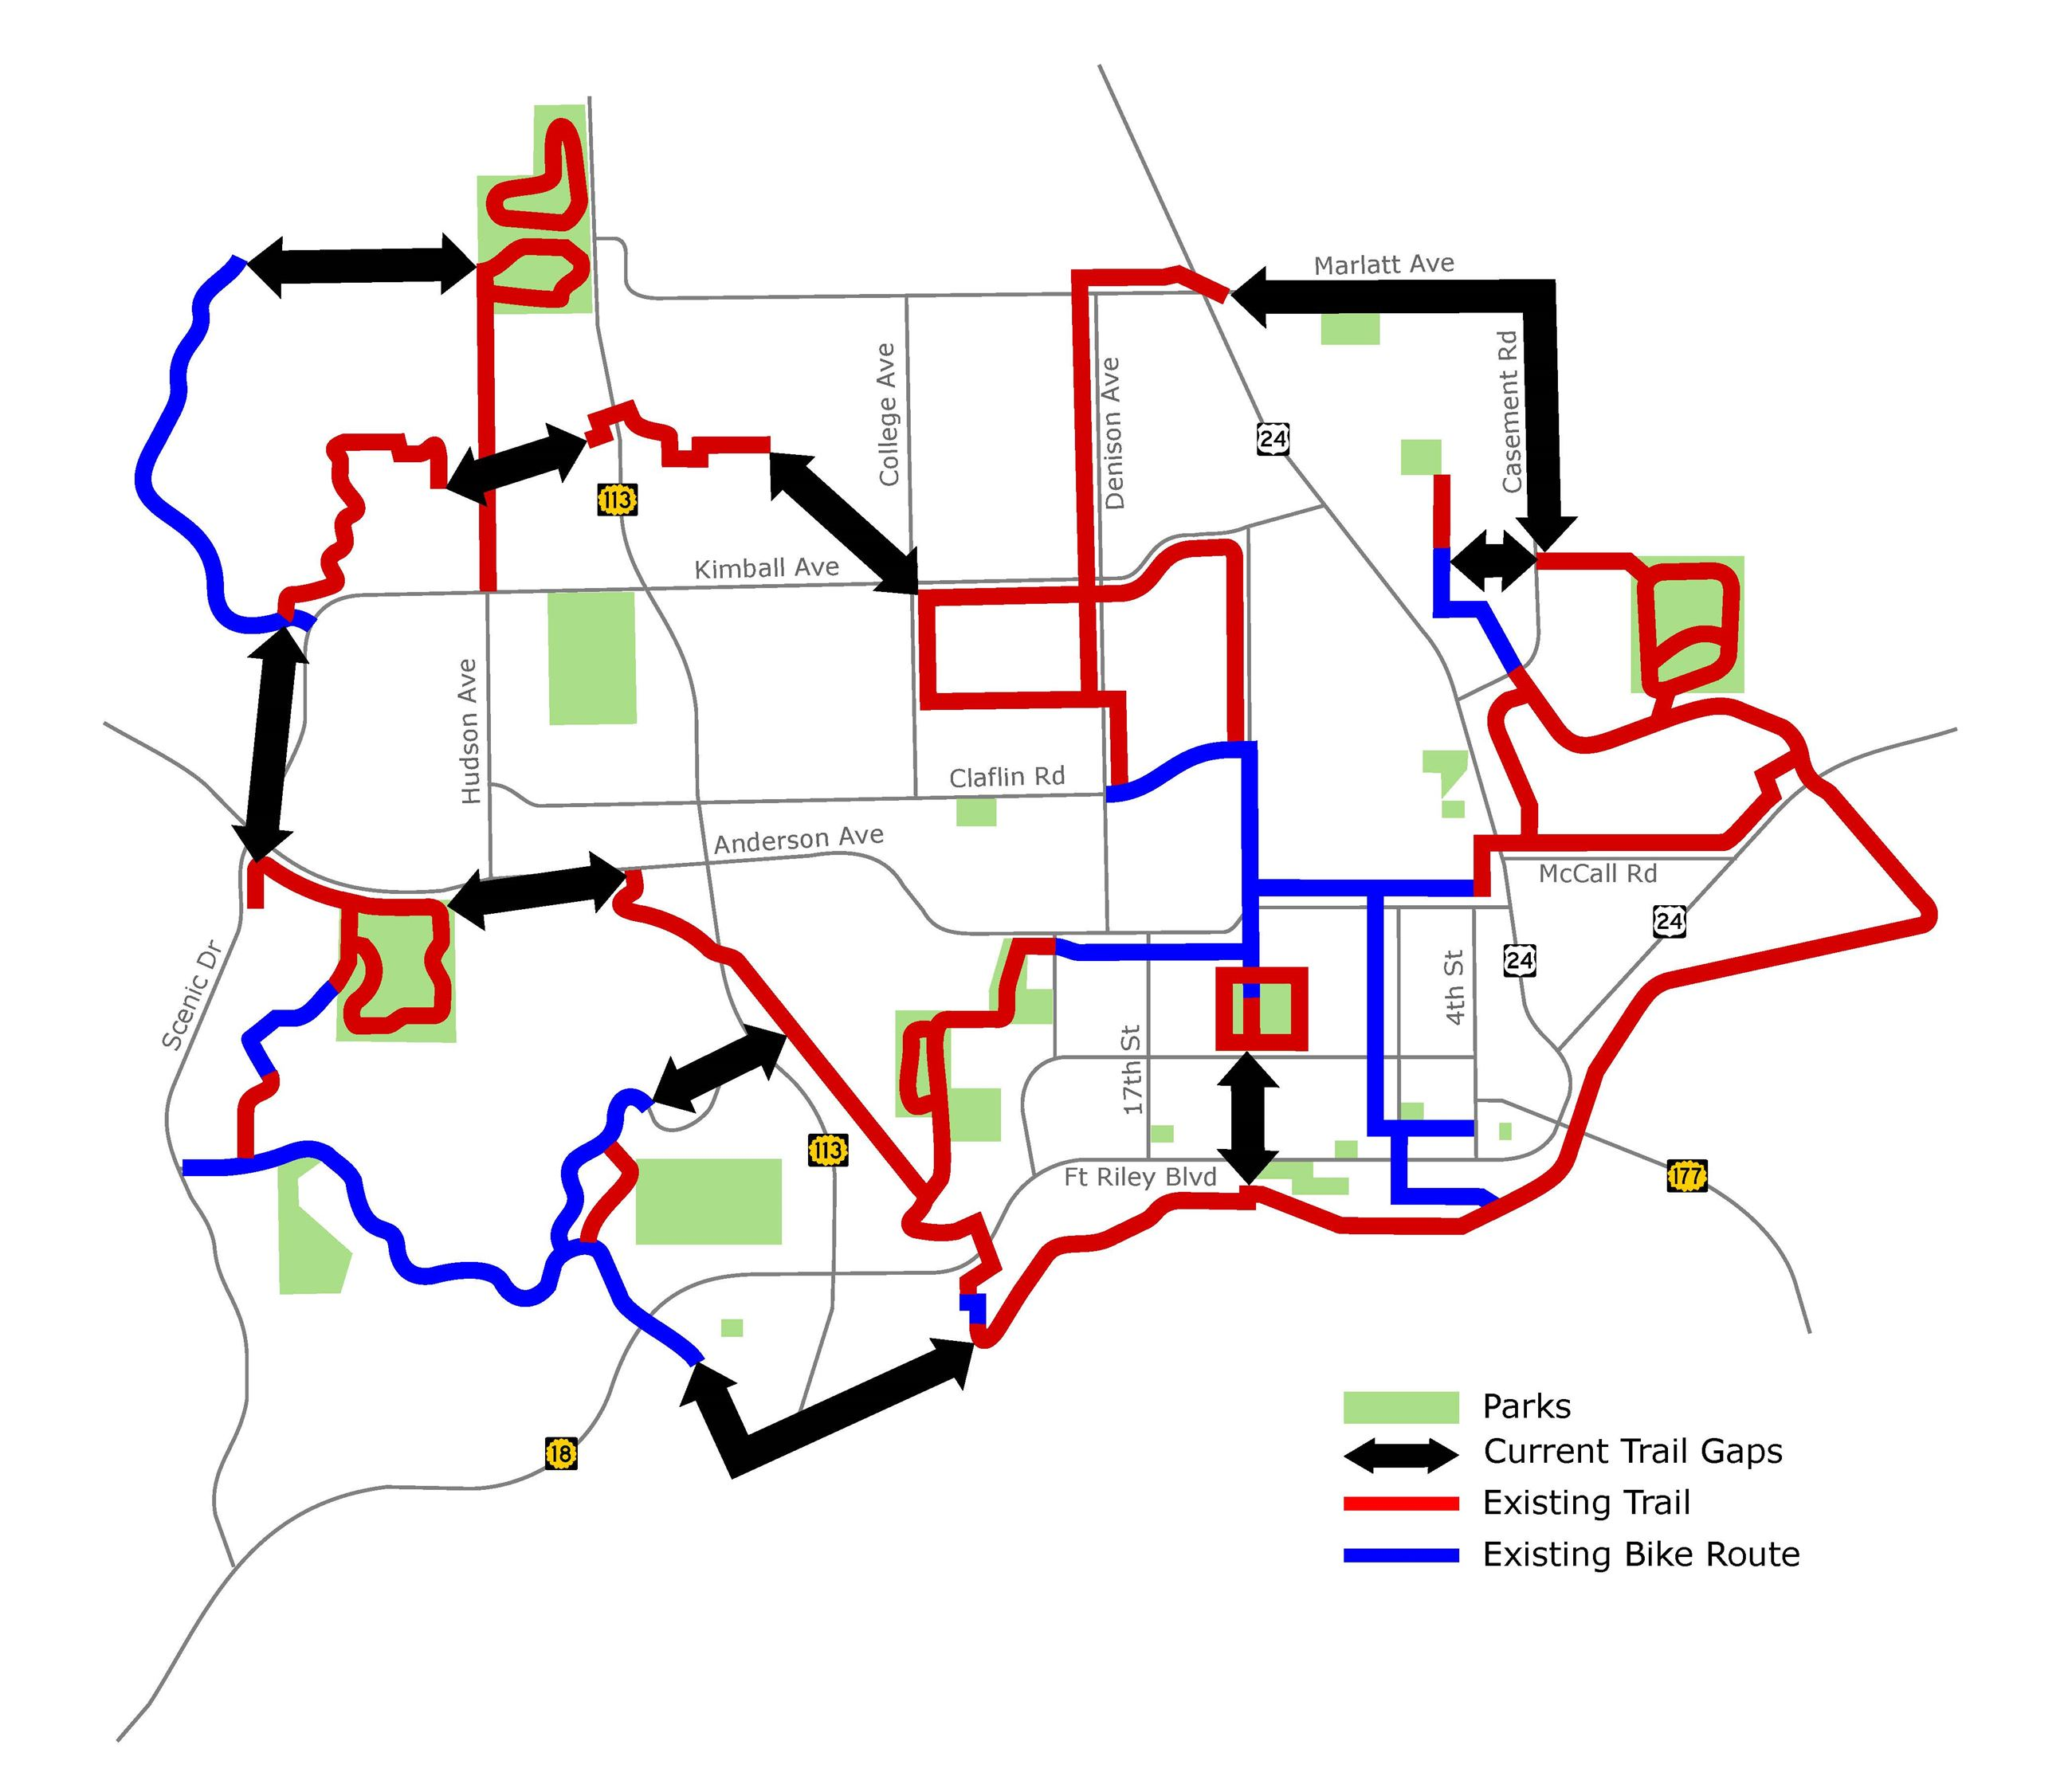 Map of gaps in a city trail